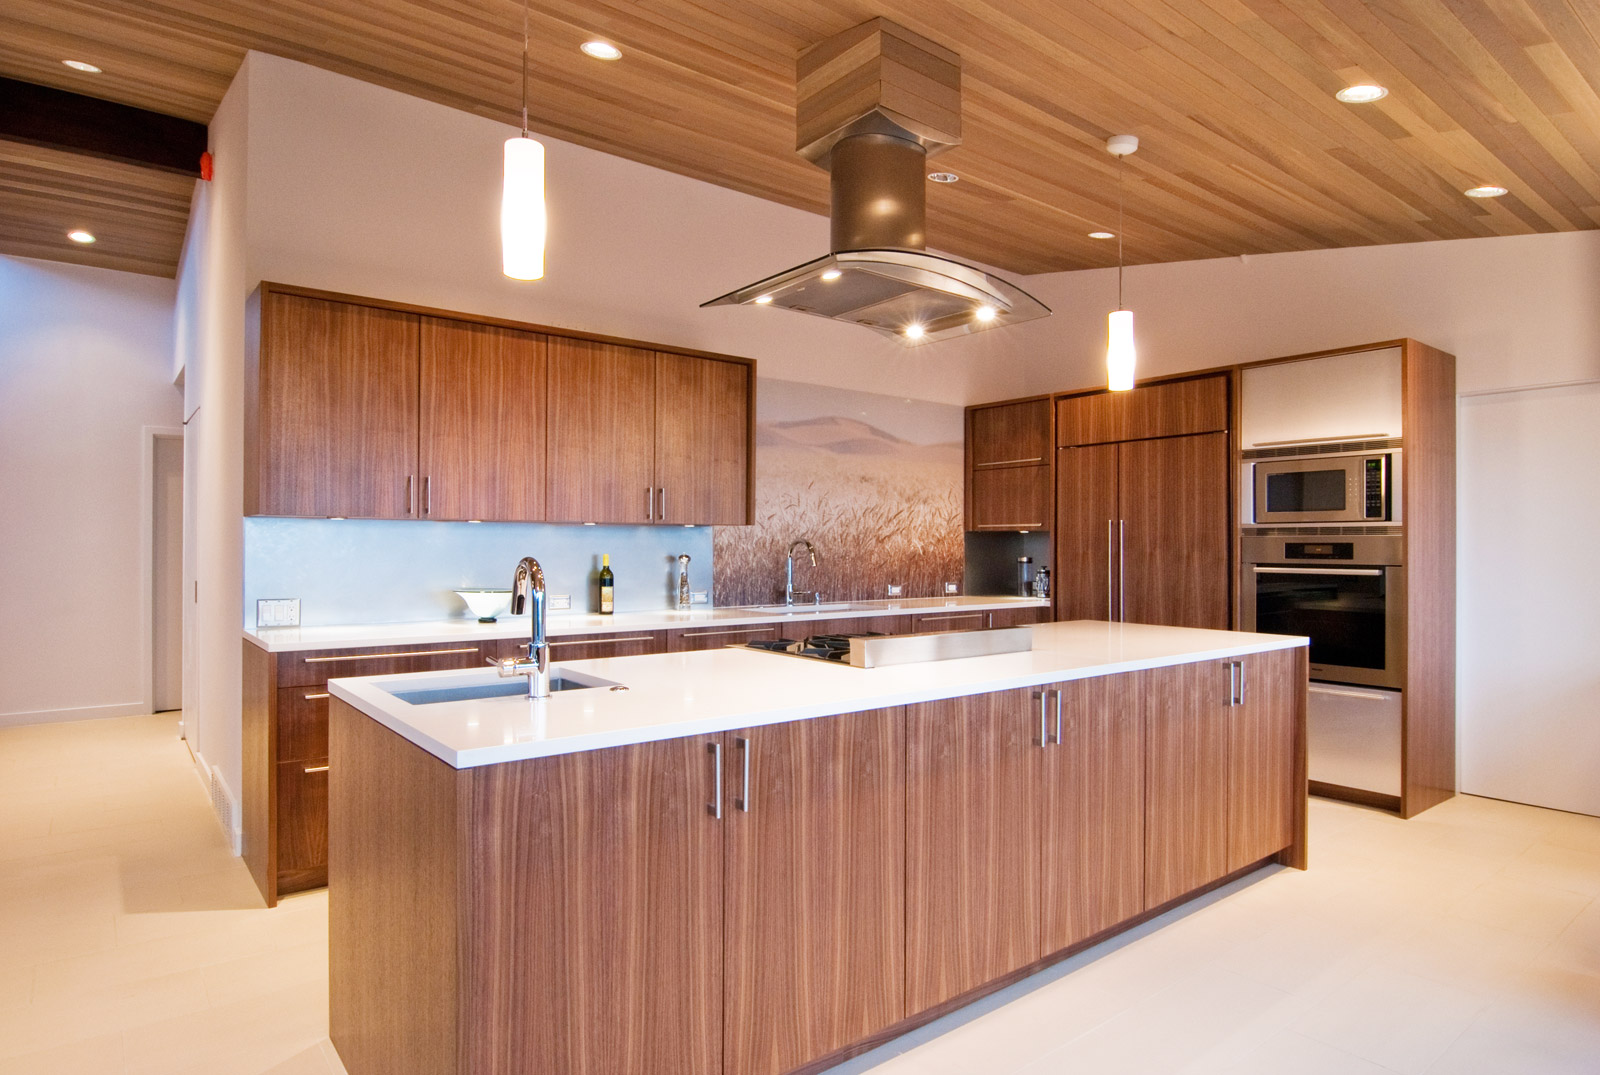 9 Foot Kitchen Island the multiple roles of the kitchen island | build blog